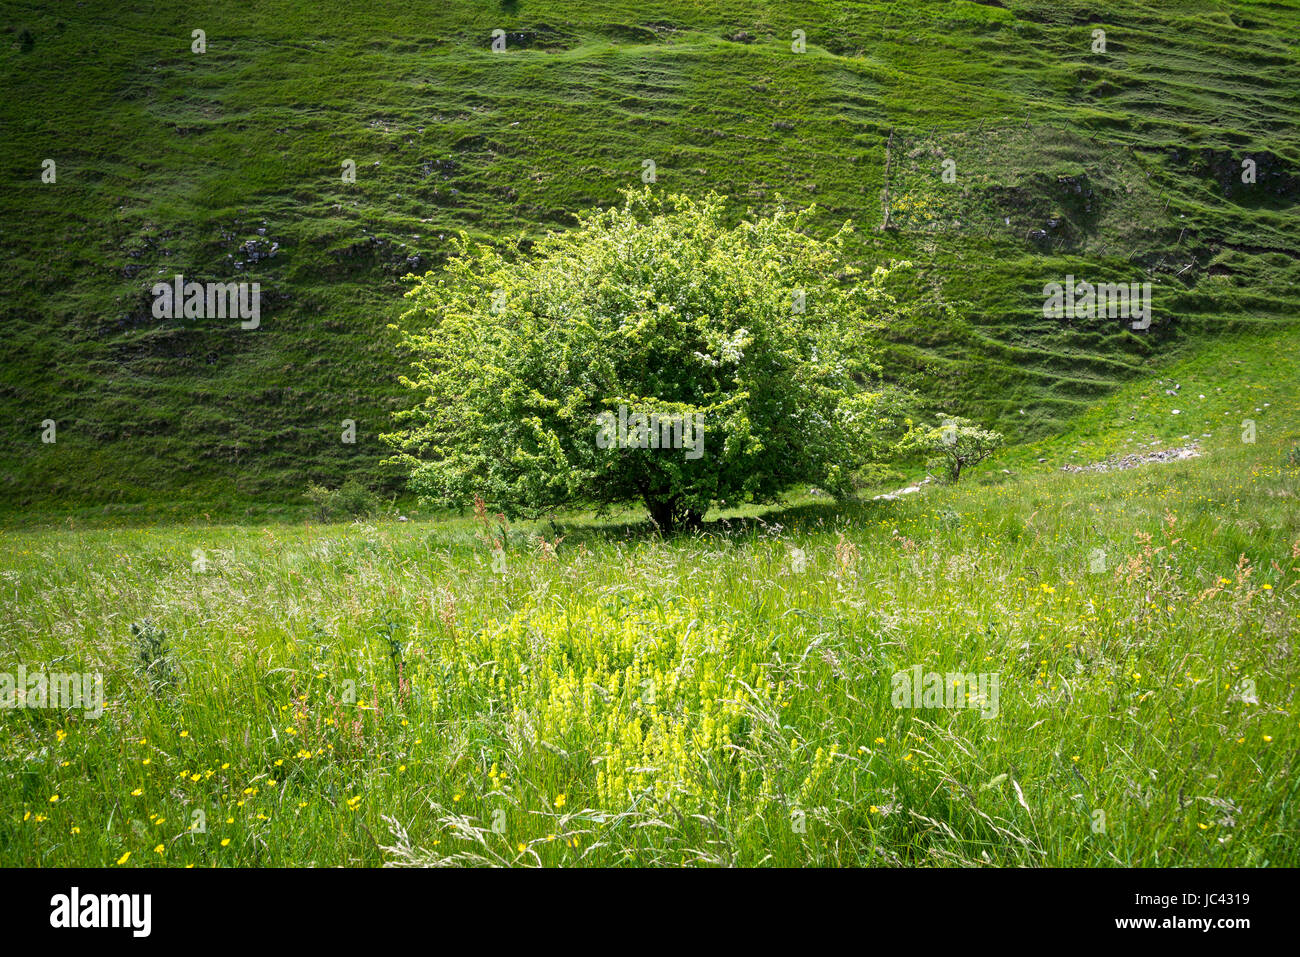 Hawthorn tree in Tansley Dale near Litton, Derbyshire, England. - Stock Image